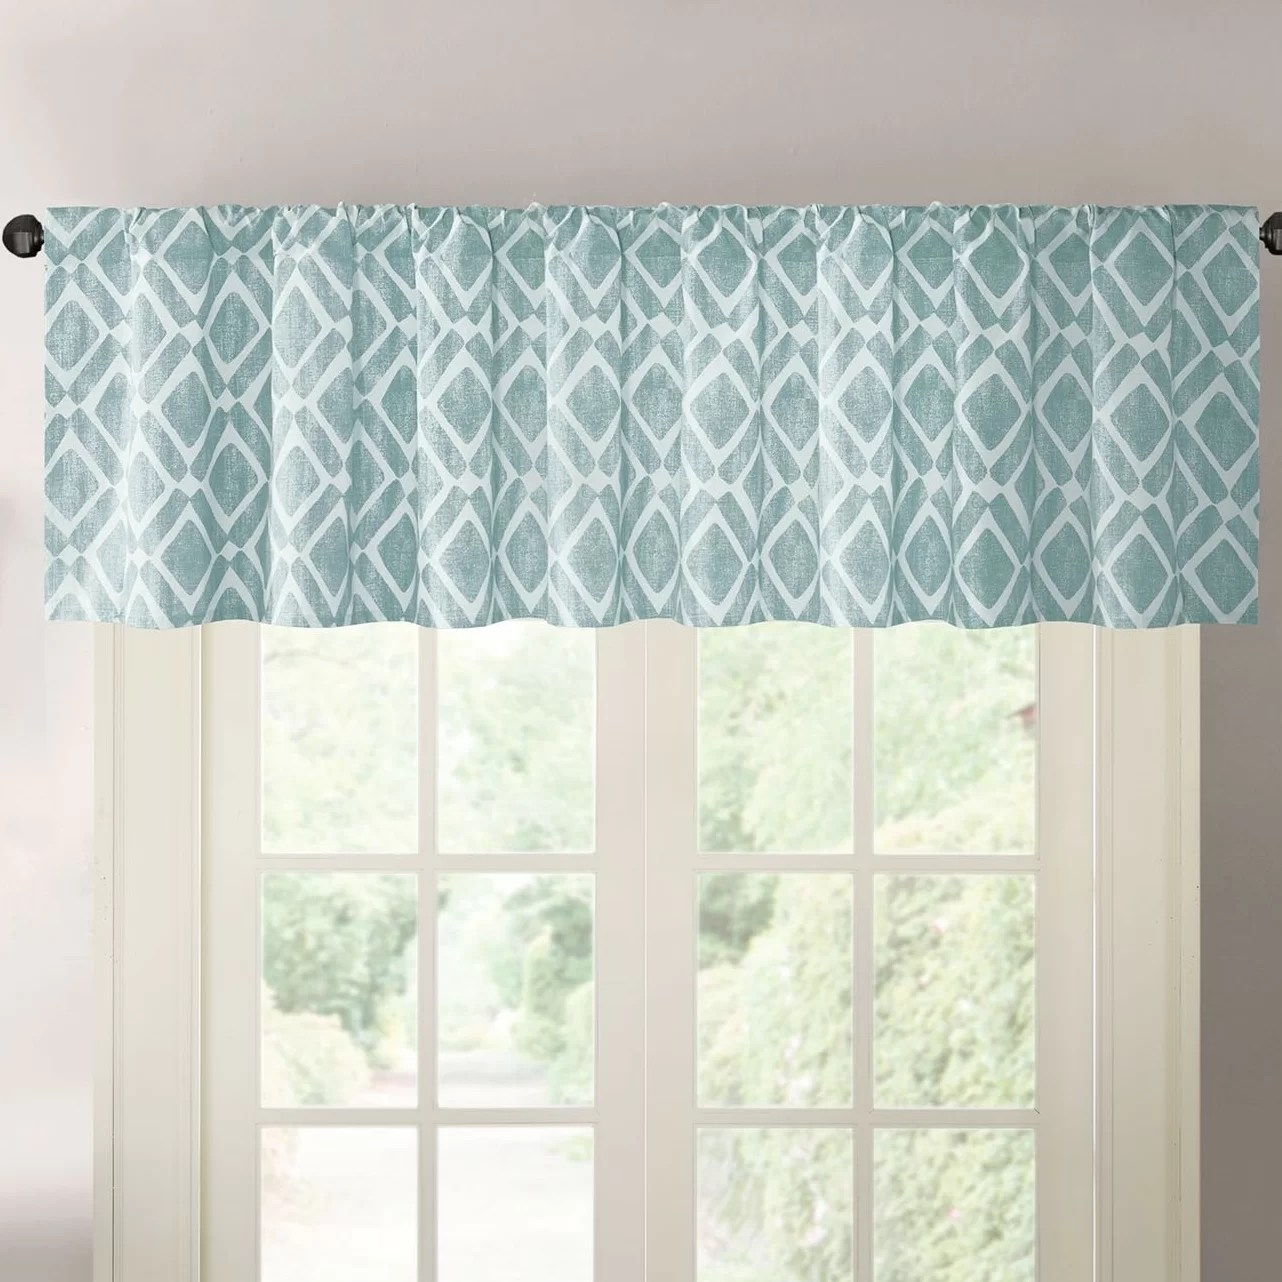 Varick Gallery Lippert Print Light Filtering Curtain